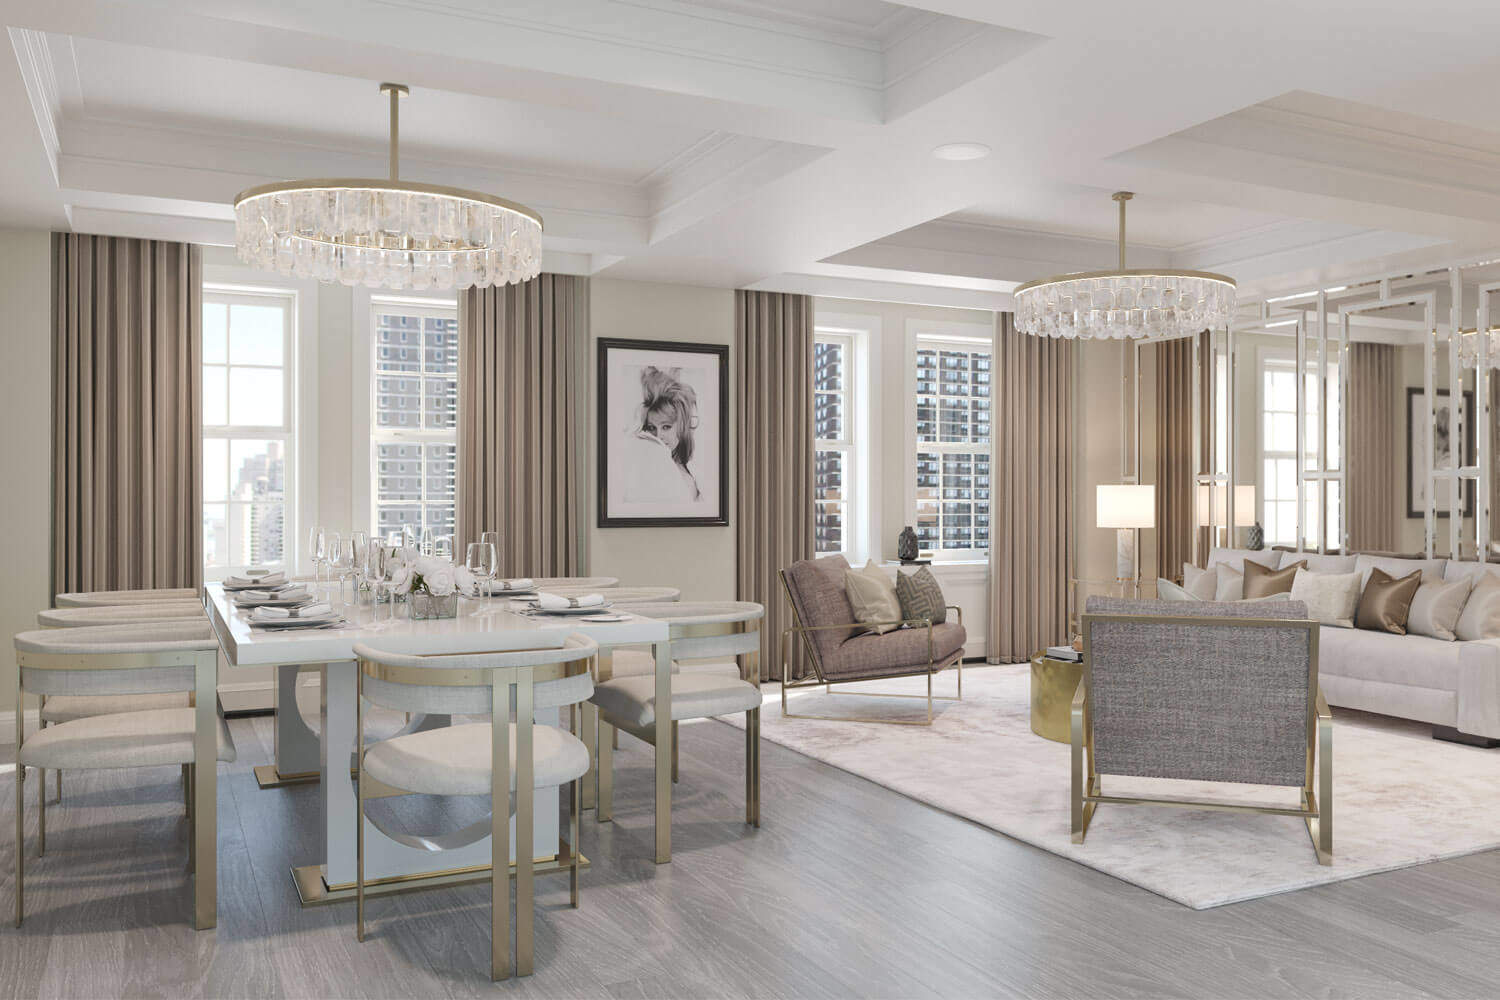 architectural-visualisation-of-a-reception-room-interior-design-in-new-york.jpg